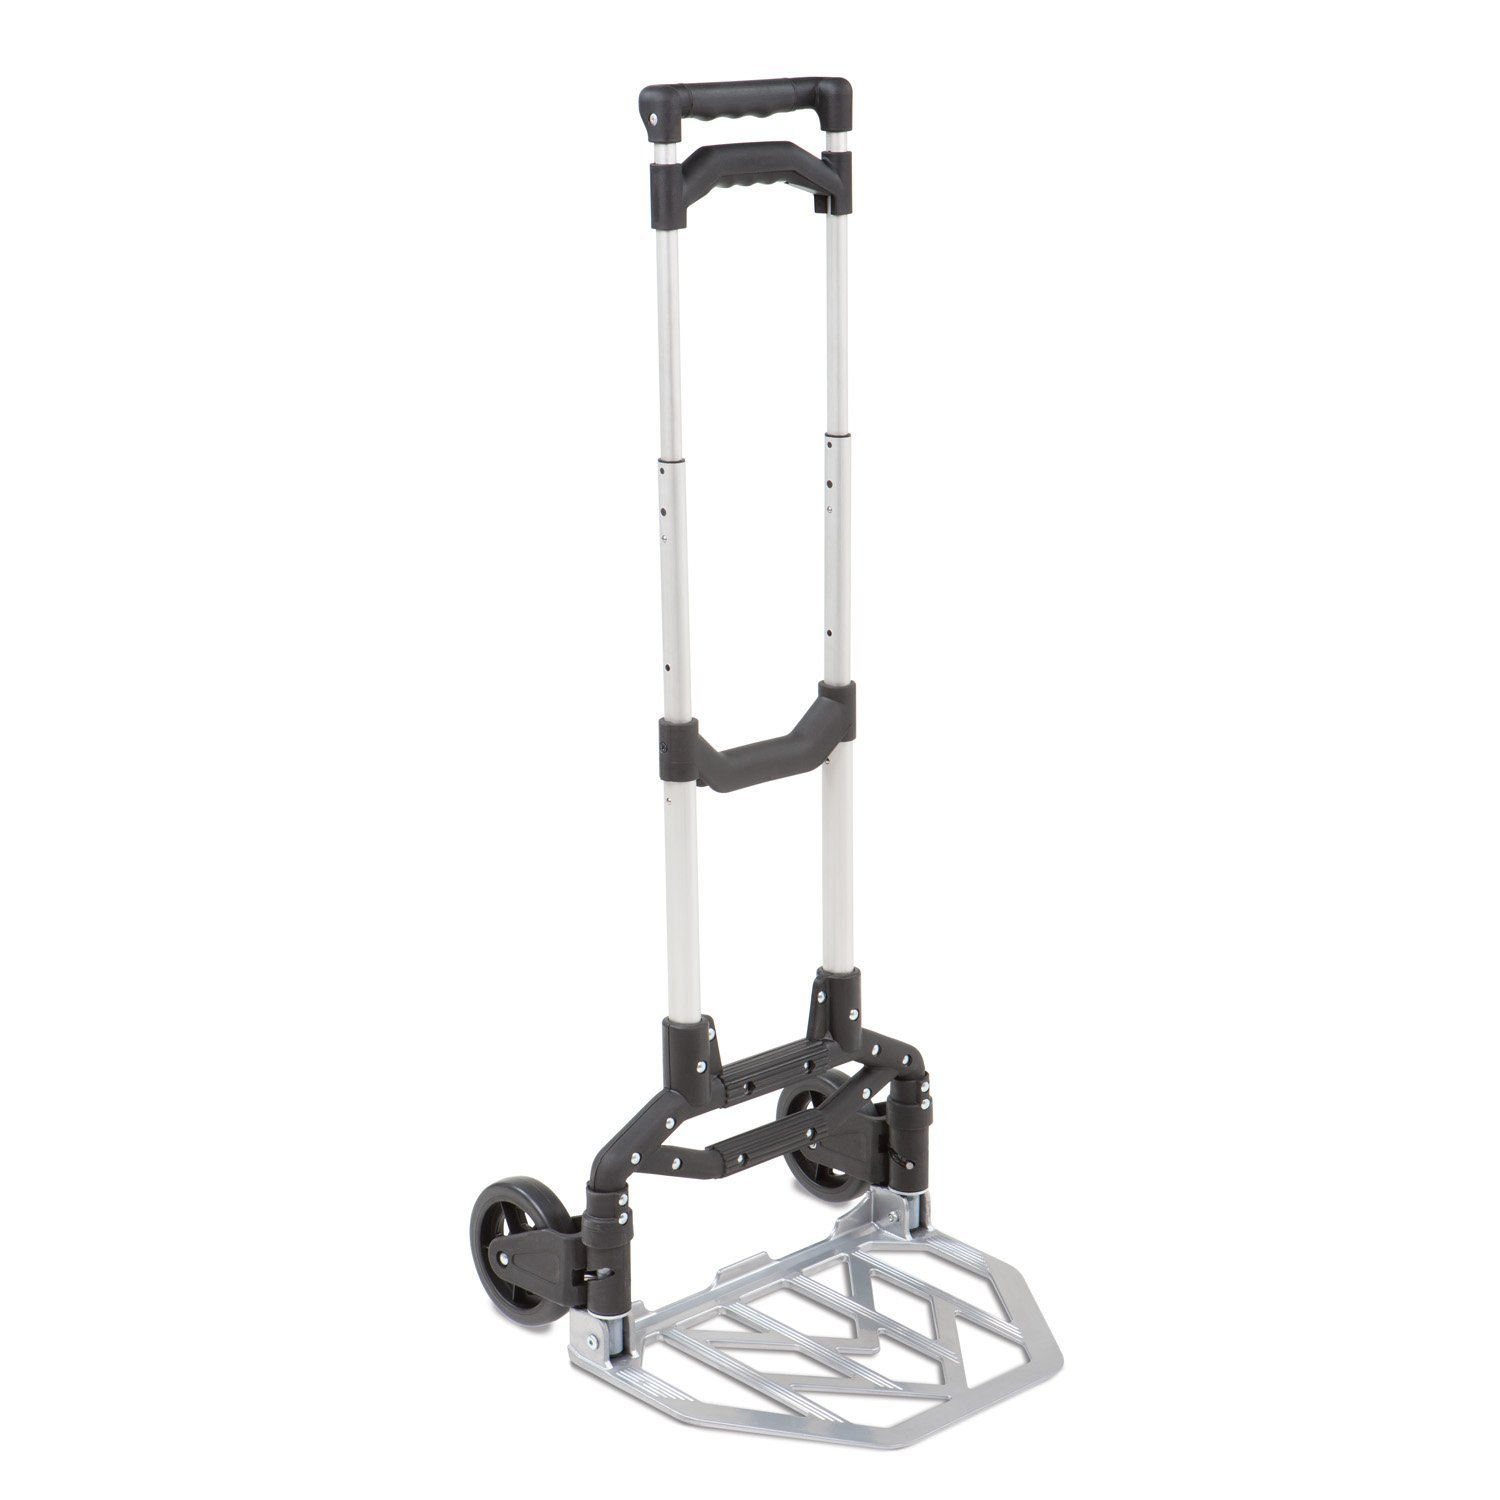 Folding Hand Truck Cart Dolly with Wheels Portable Aluminum Luggage Cart Compact Utility Cart with Bandage NSDUS-KT-2022G SogesHome Tuff Truck D-Handle Utility Hand Truck Folding Hand Truck